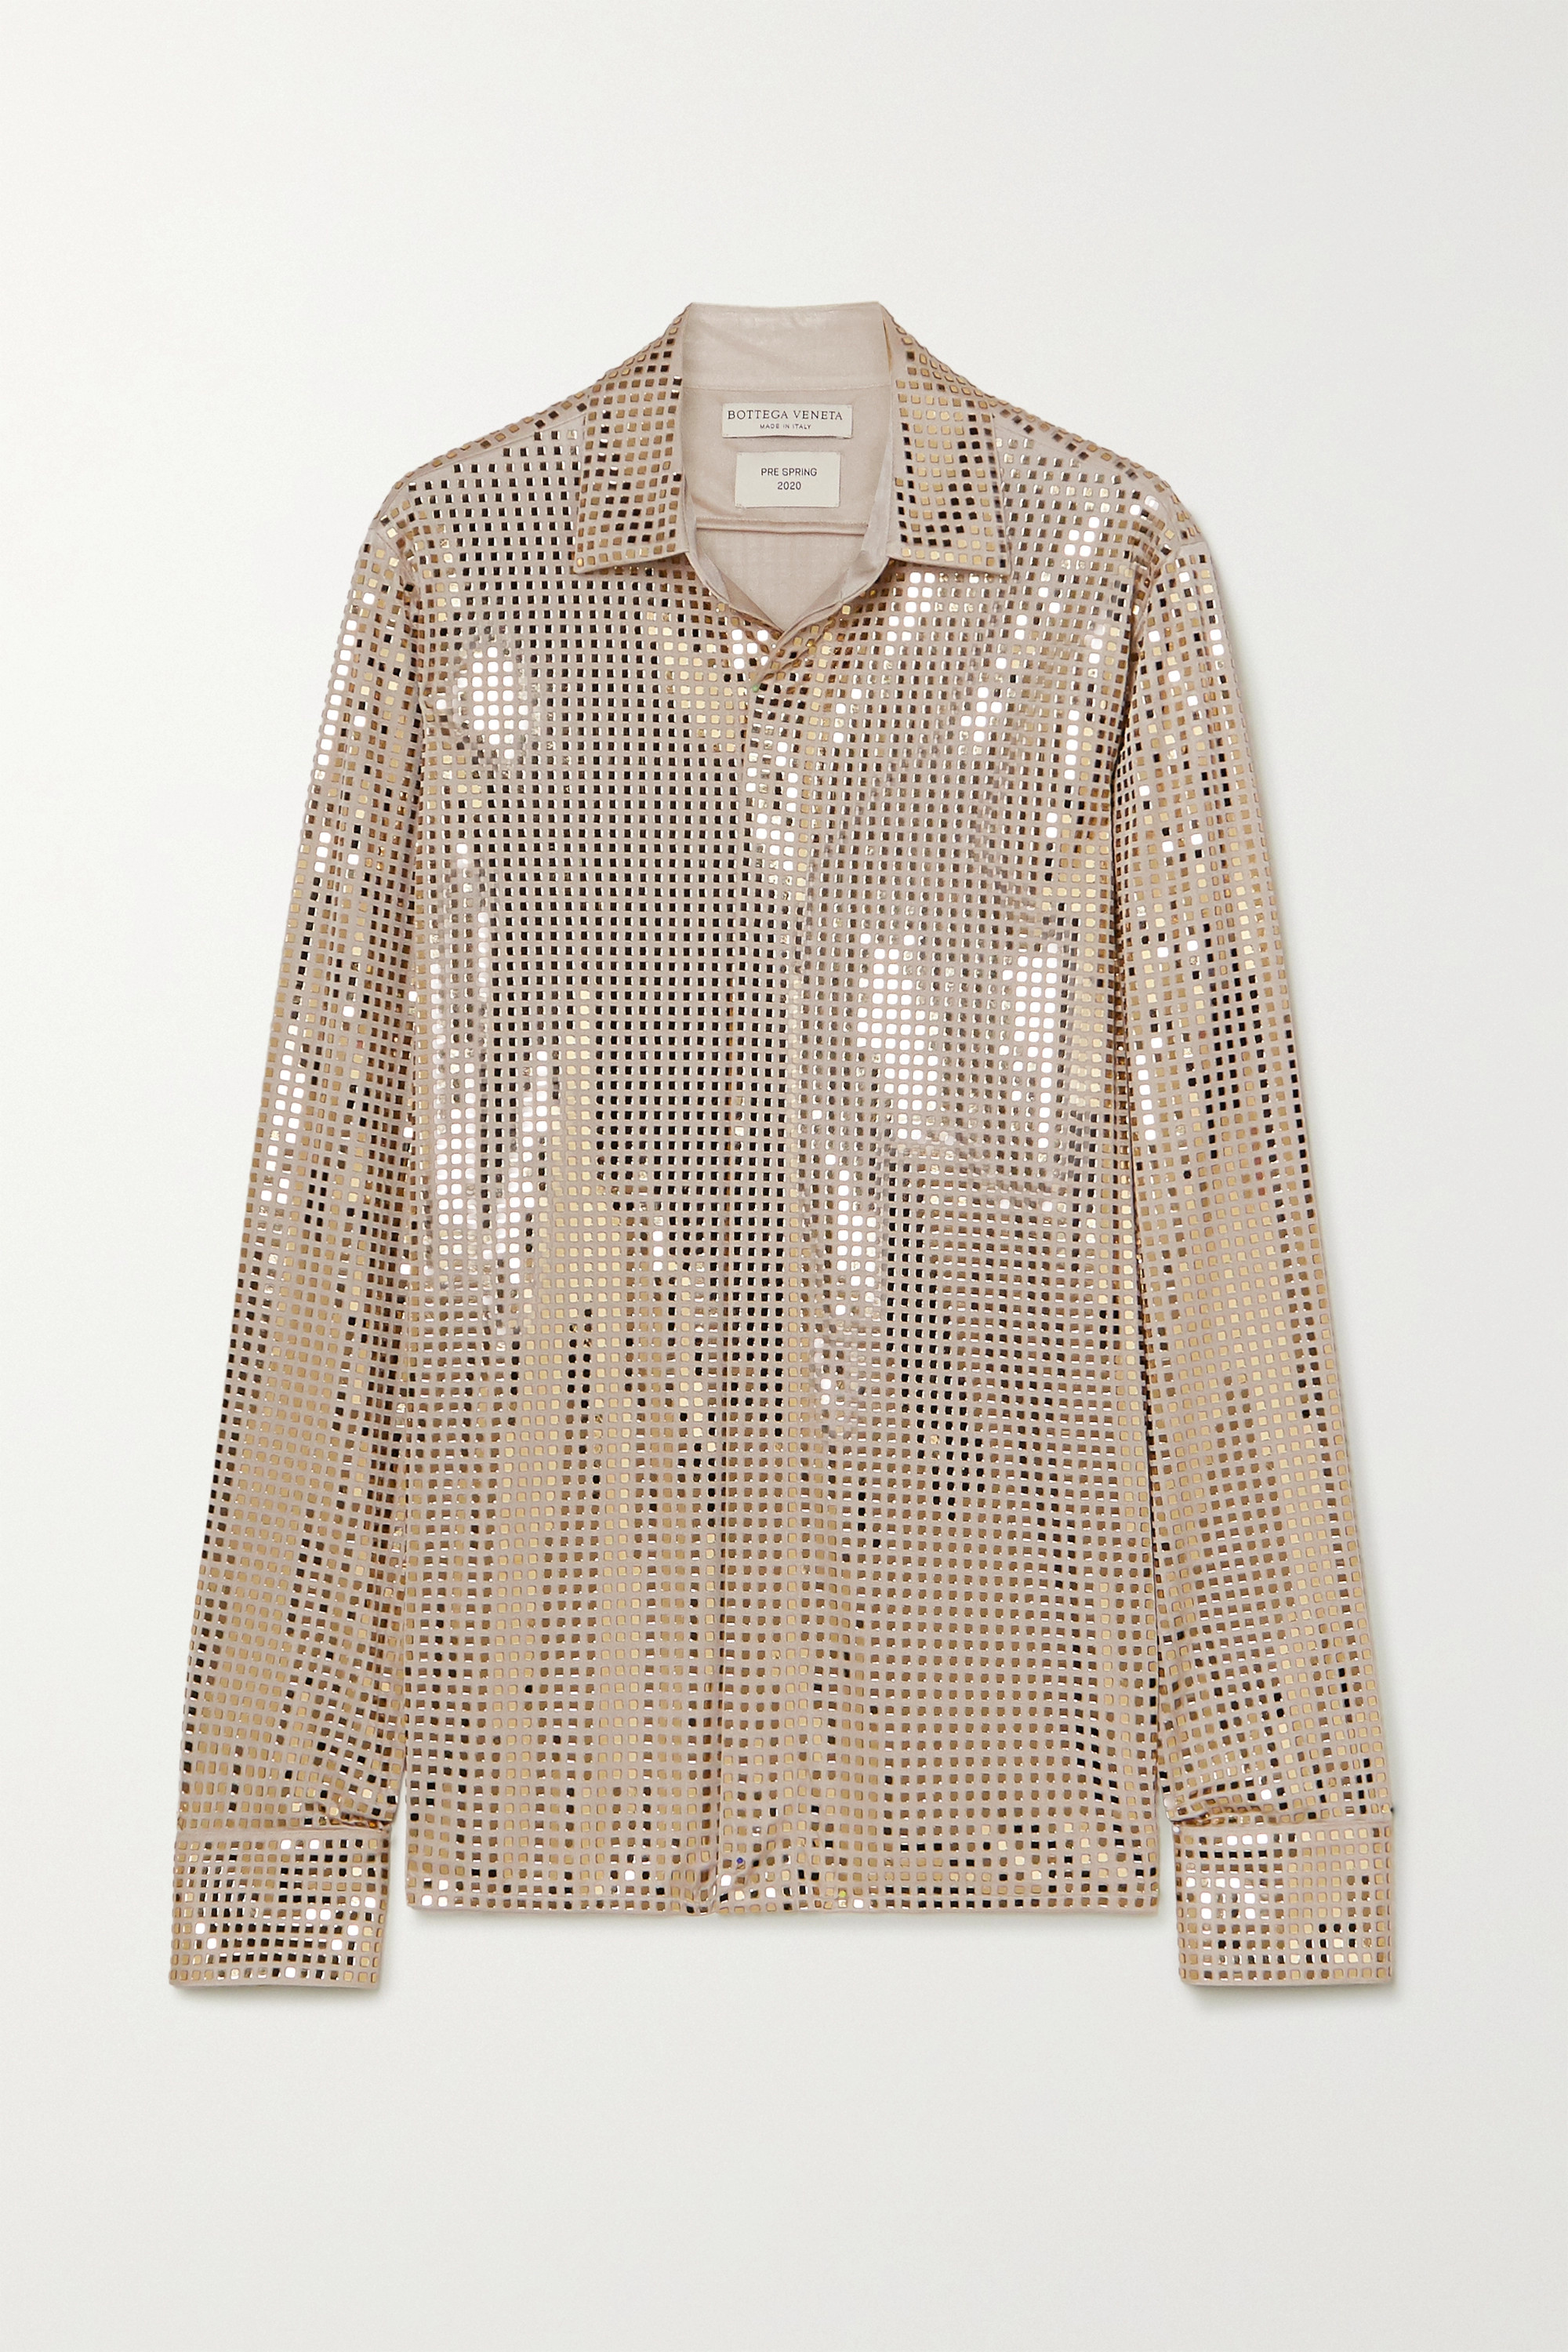 Bottega Veneta Sequin-embellished satin-jersey shirt